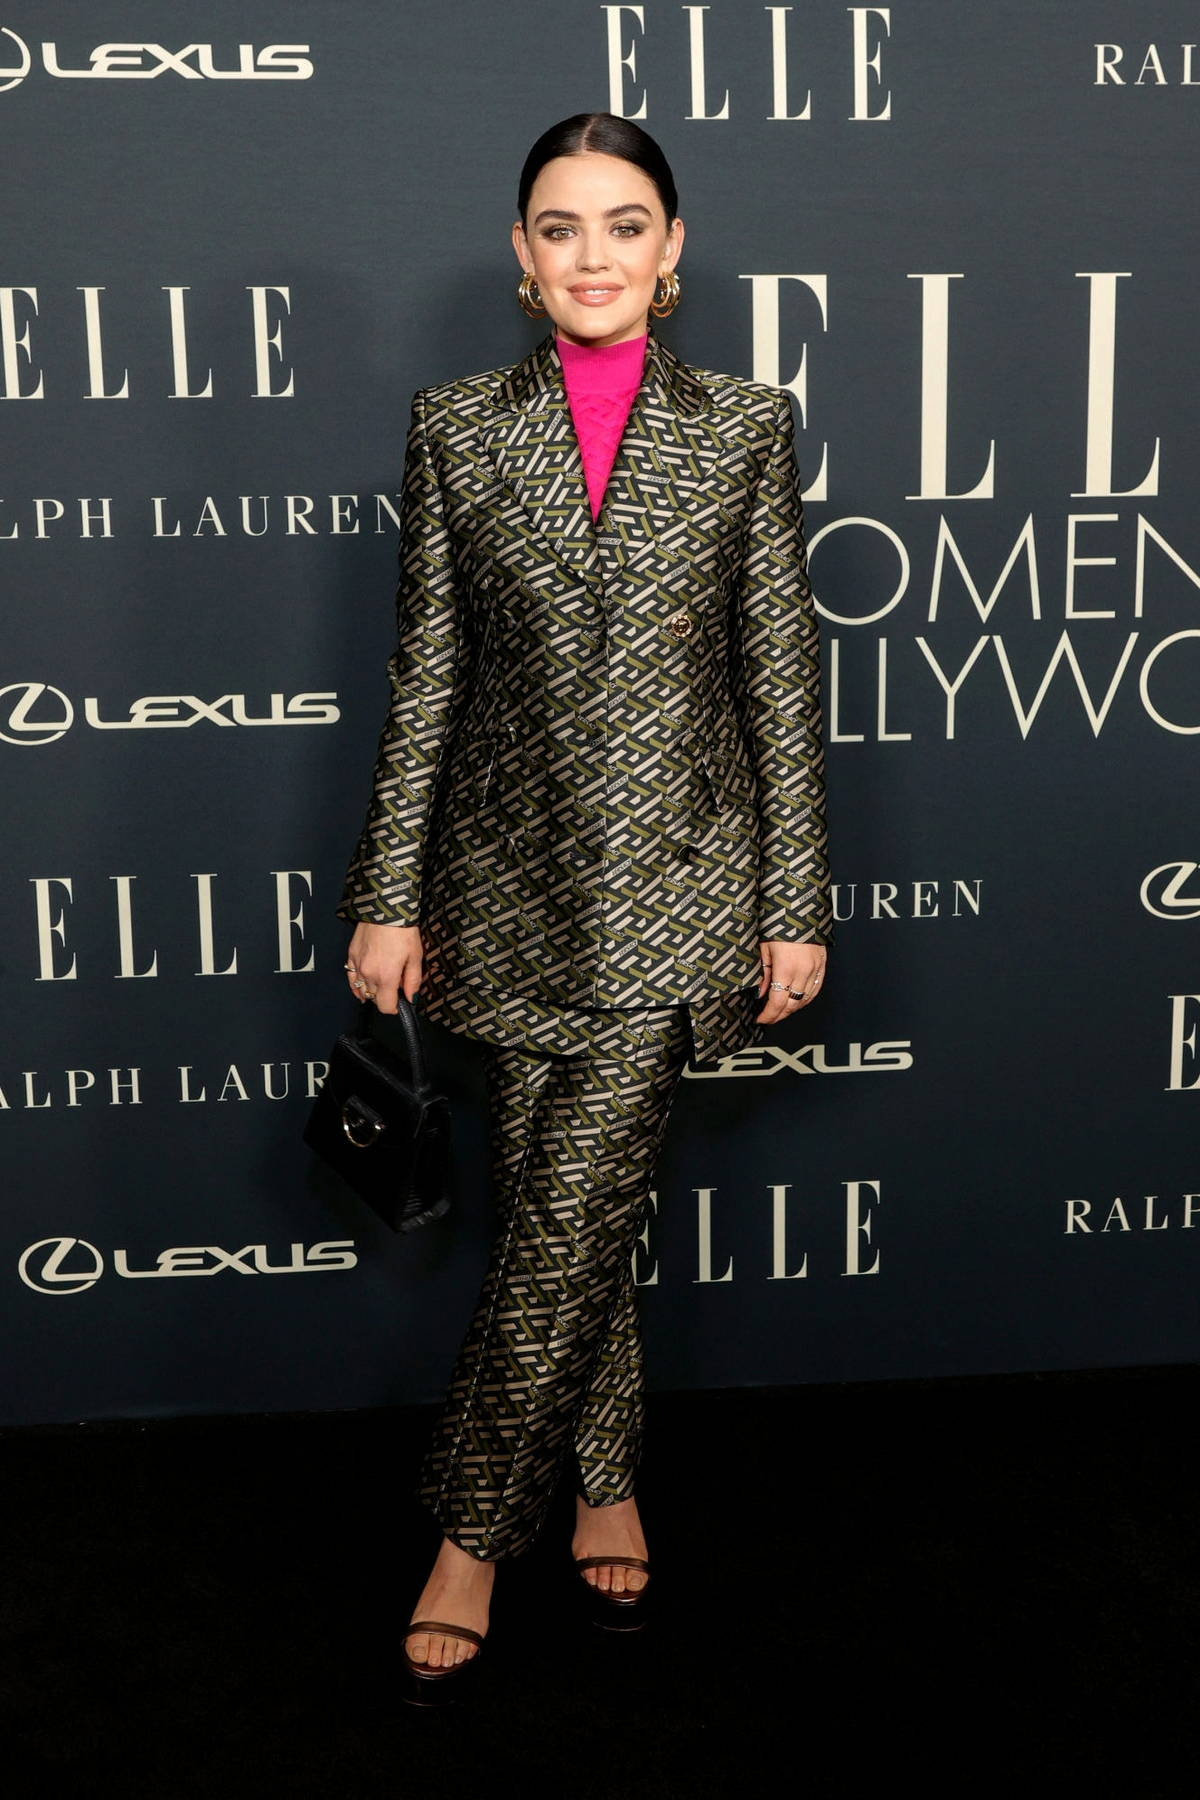 Lucy Hale attends ELLE's 27th Annual Women In Hollywood Celebration in Los Angeles